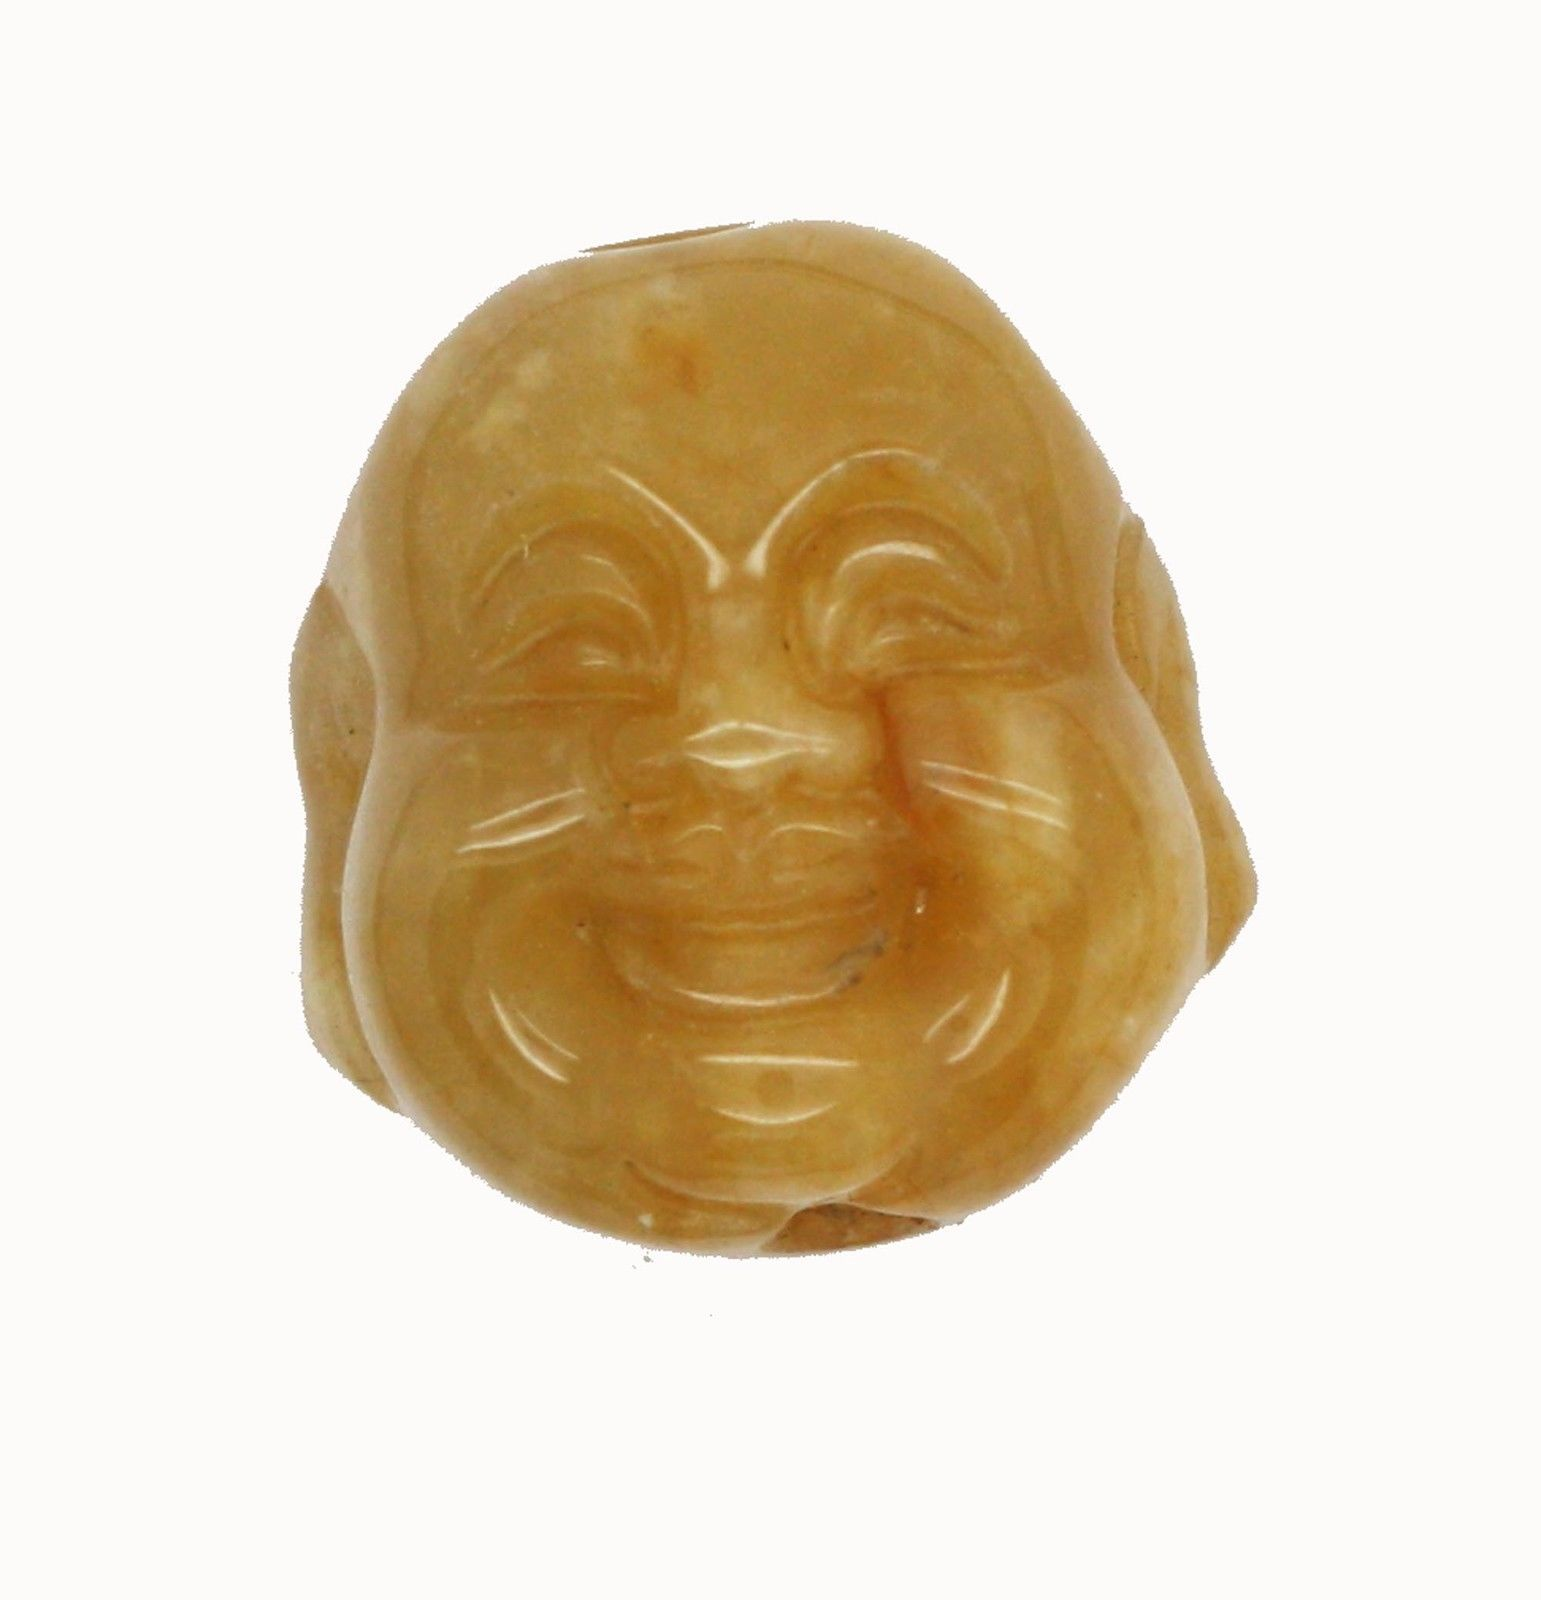 Primary image for Smiling Buddha Bead Dimensional Bead Polished Stone Pendant Necklace Ornament